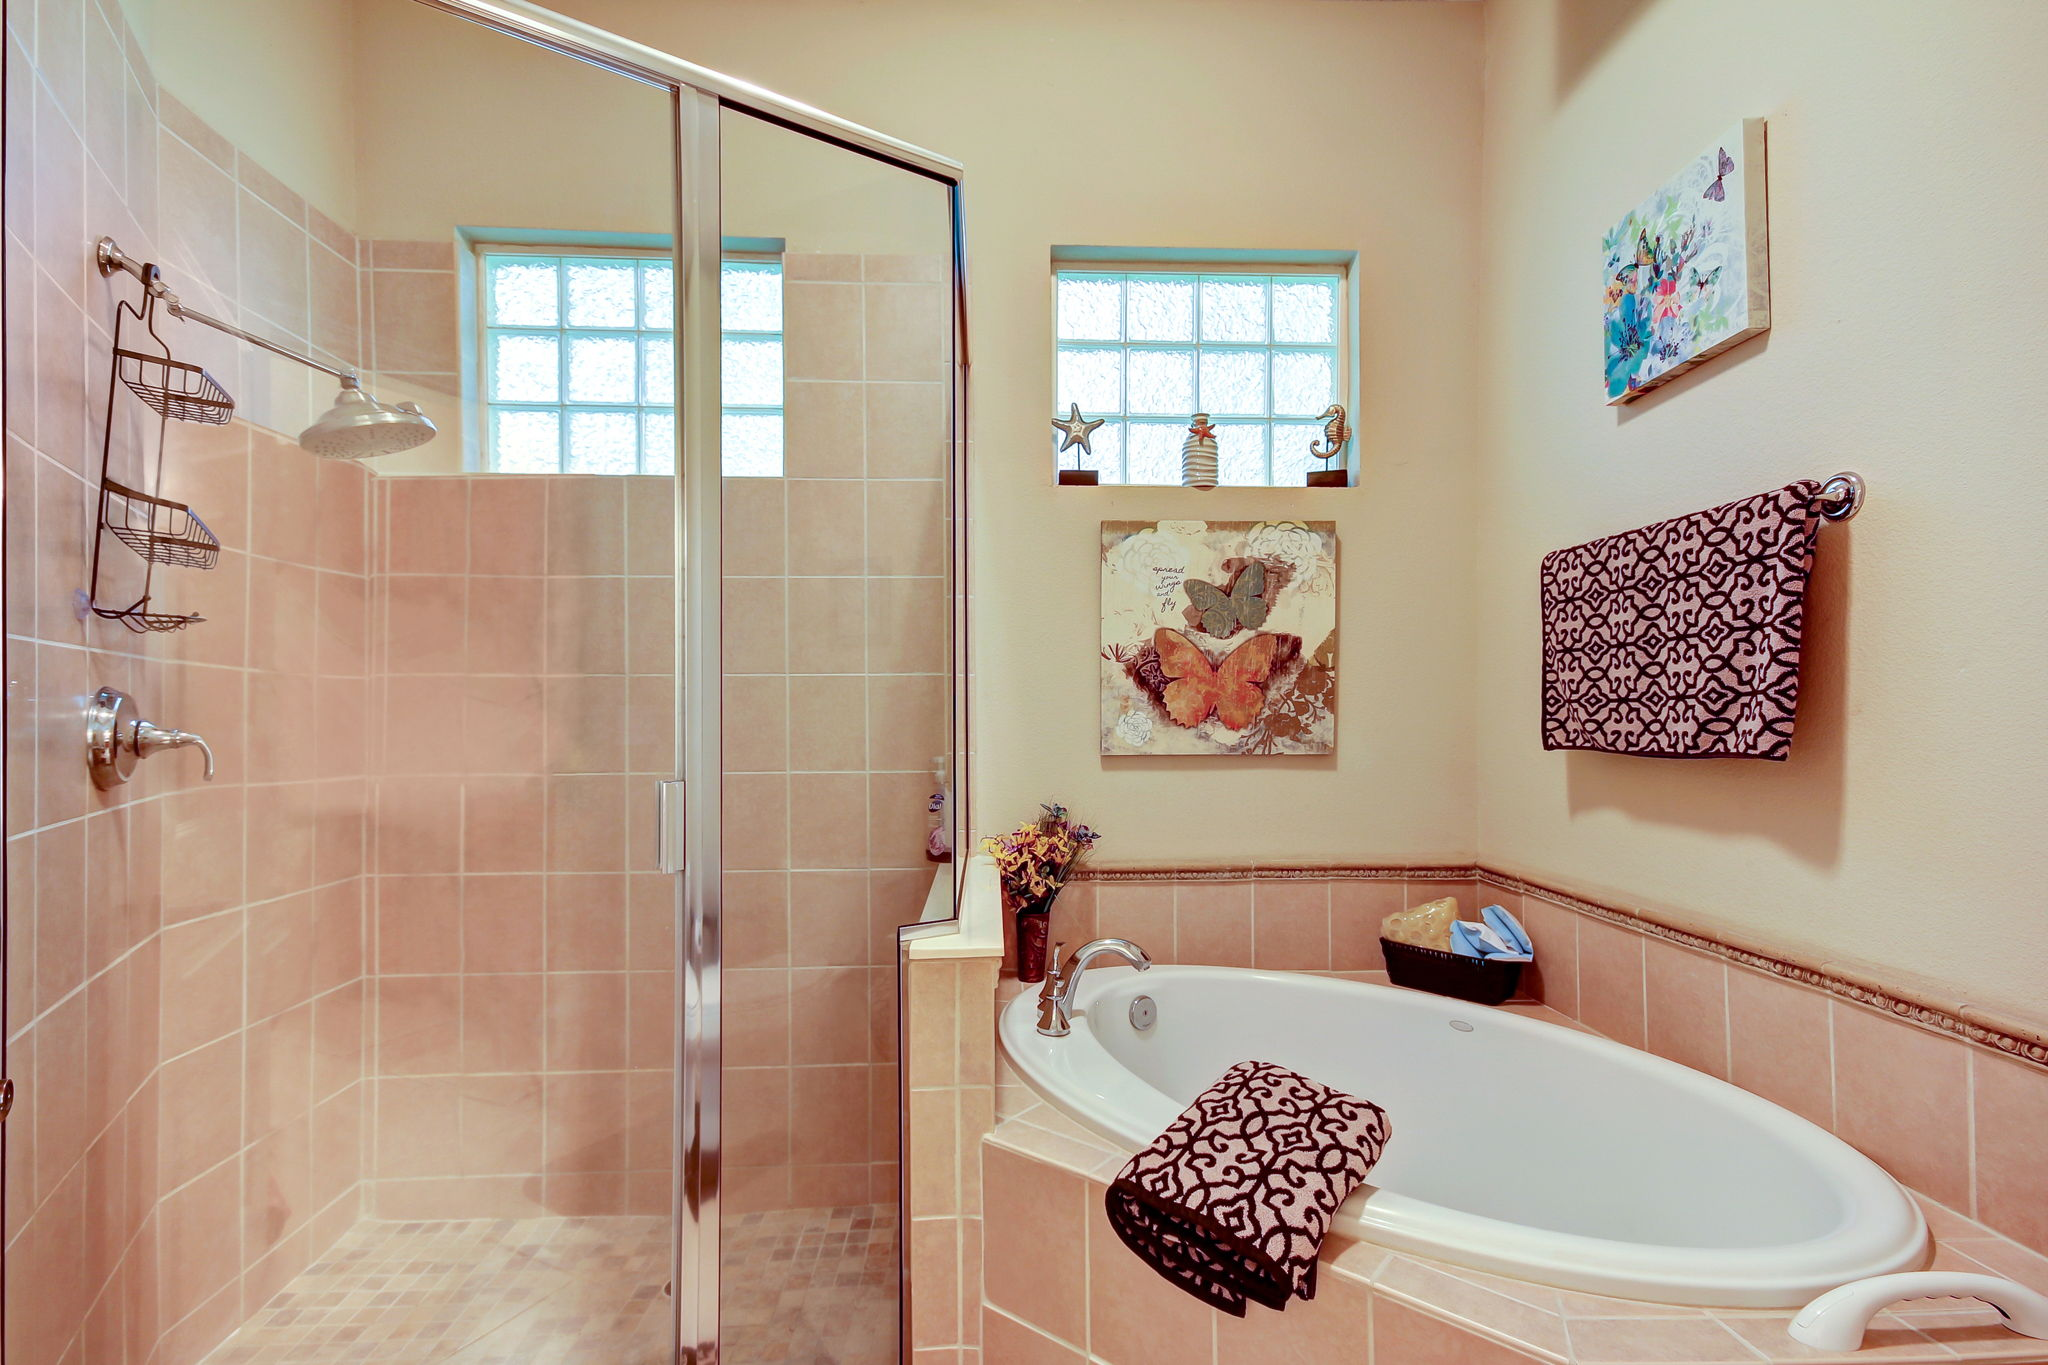 Master bath also equipped with garden tub and glass enclosed shower